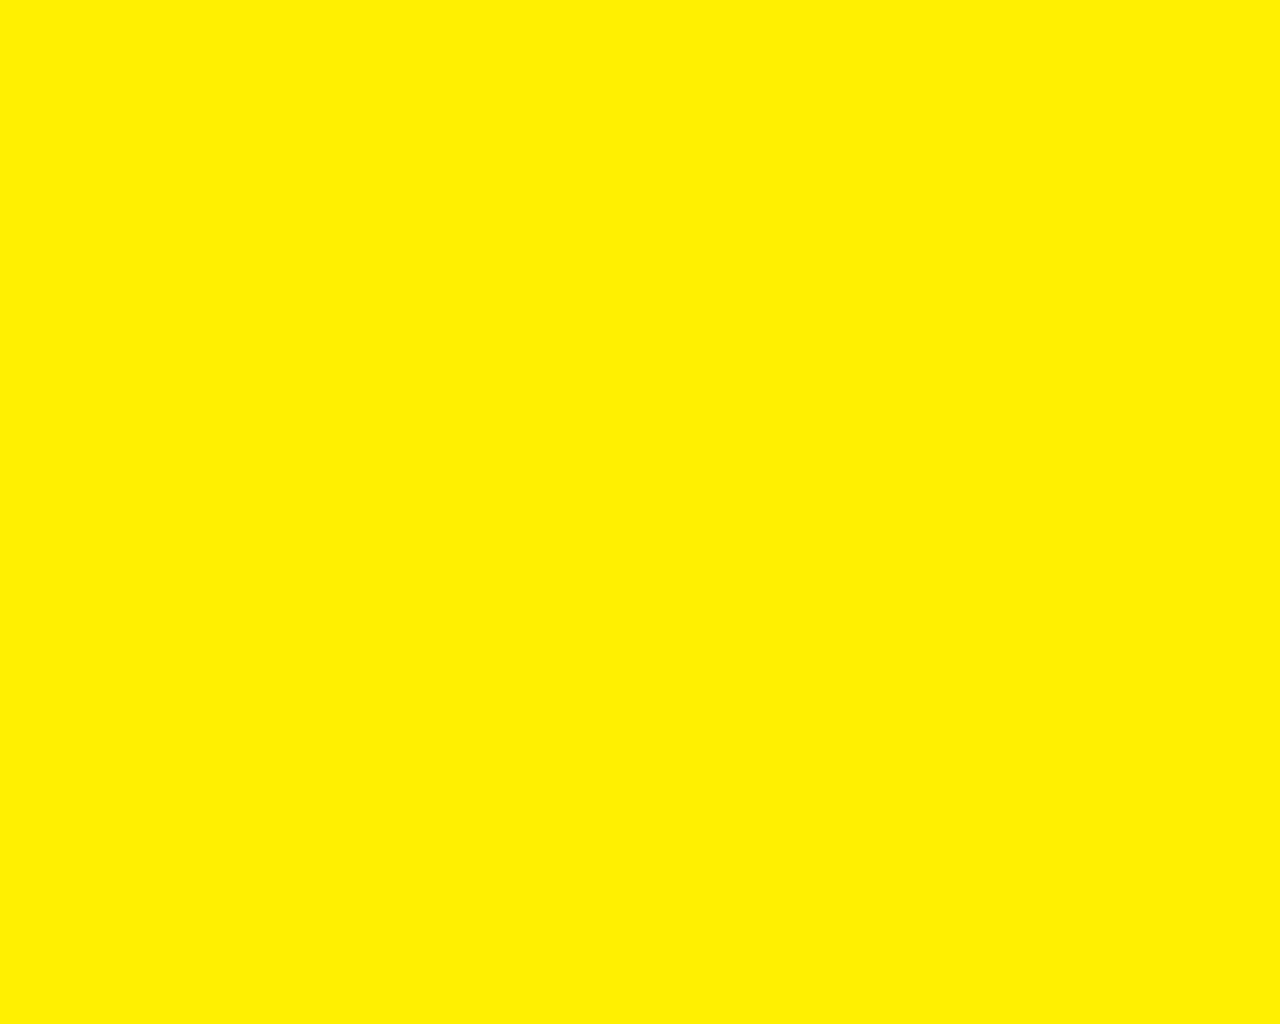 1280x1024 Canary Yellow Solid Color Background